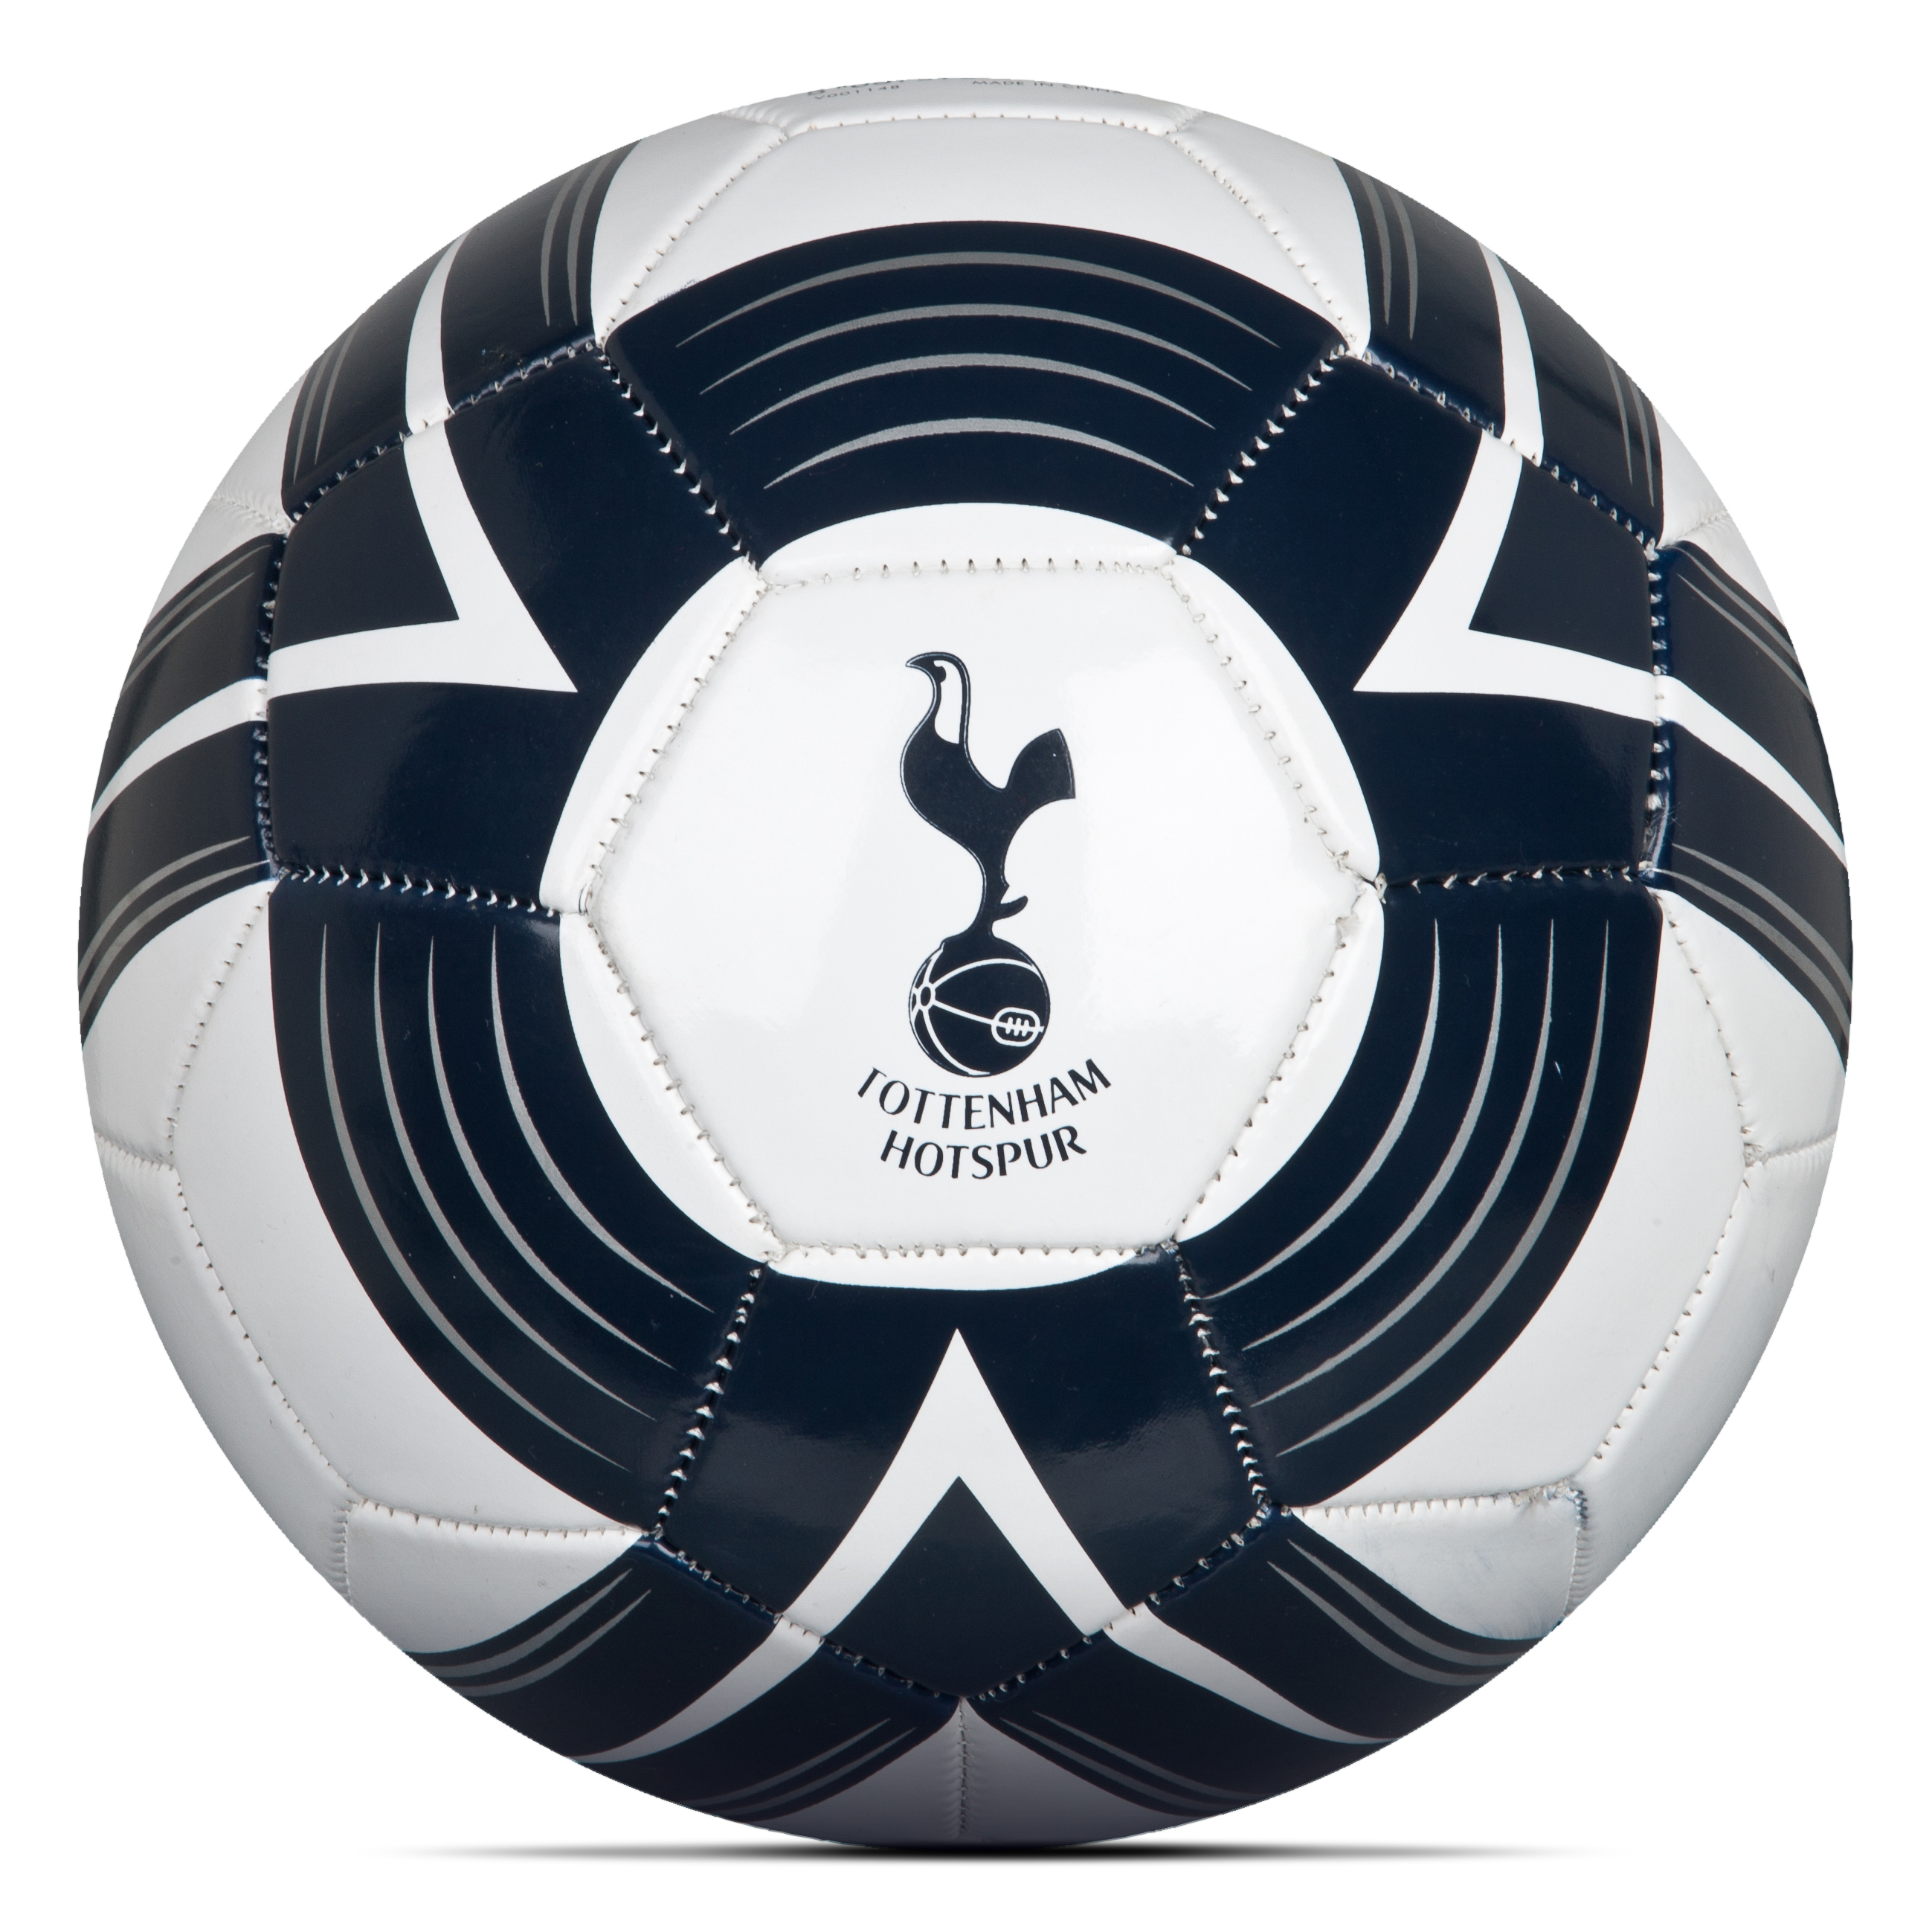 Tottenham Hotspur Cyclone Size 5 Football